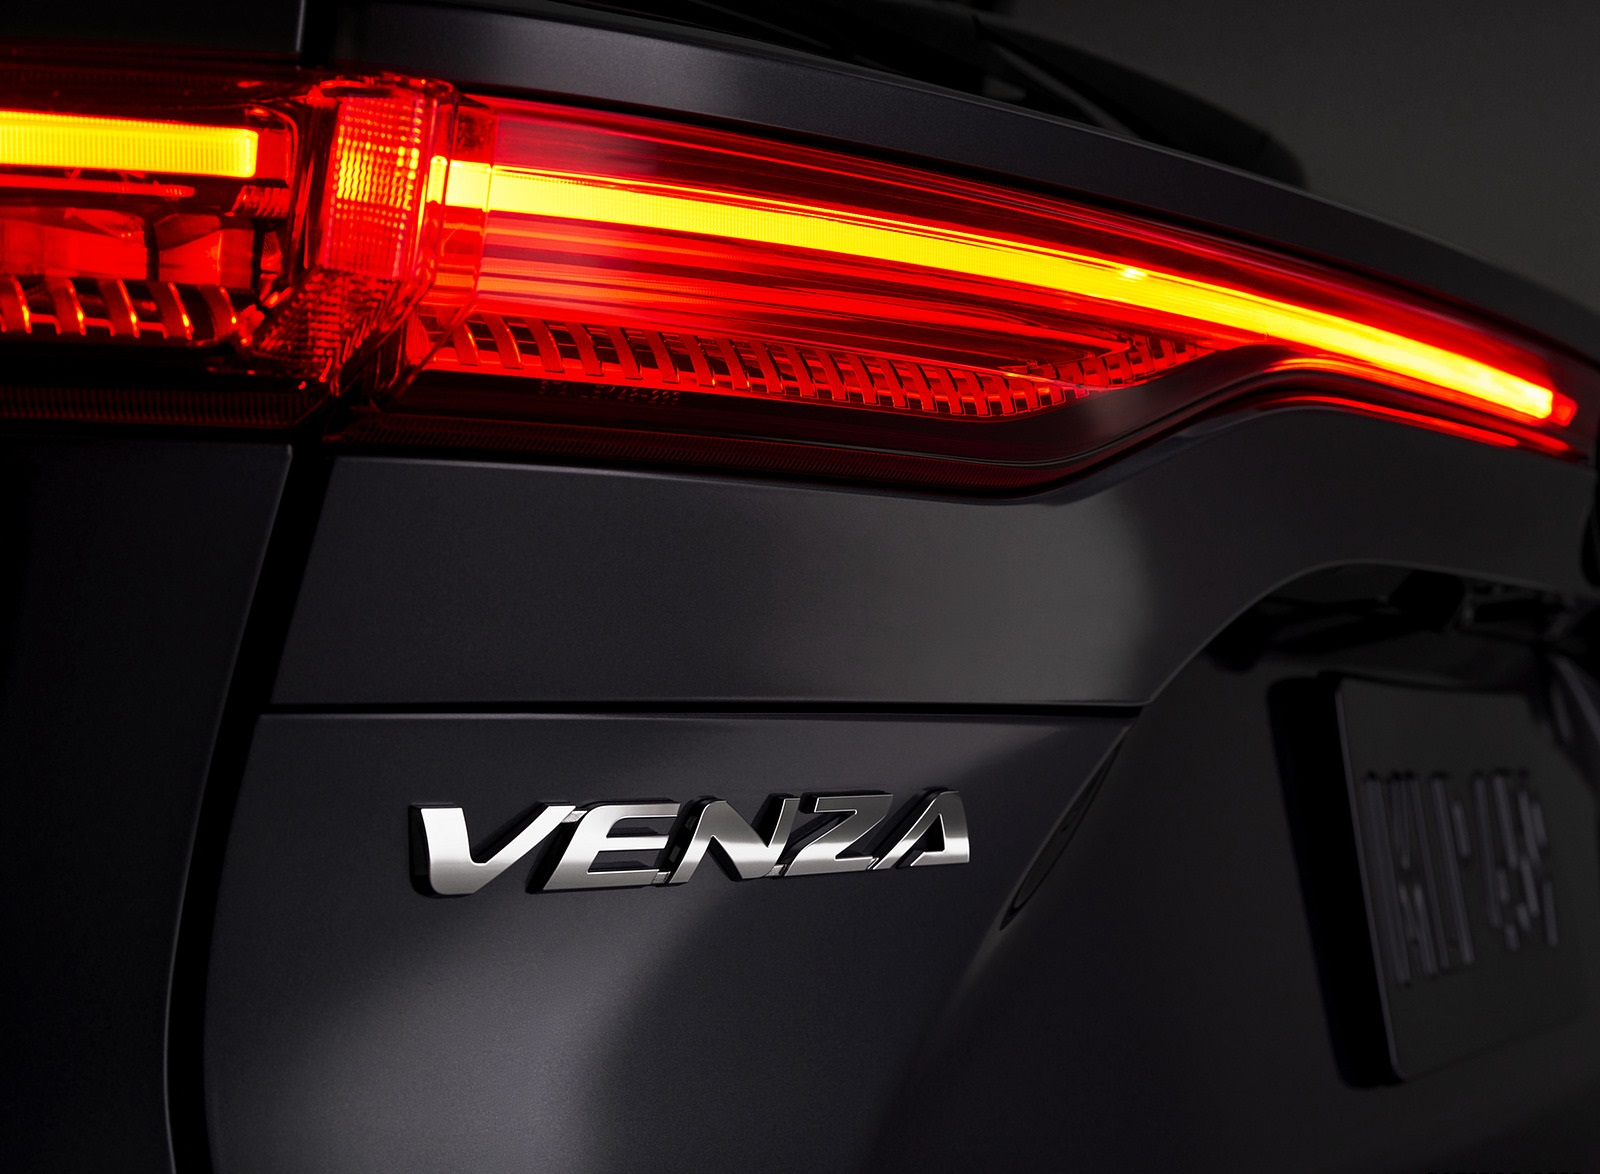 2021 Toyota Venza Tail Light Wallpapers (7)